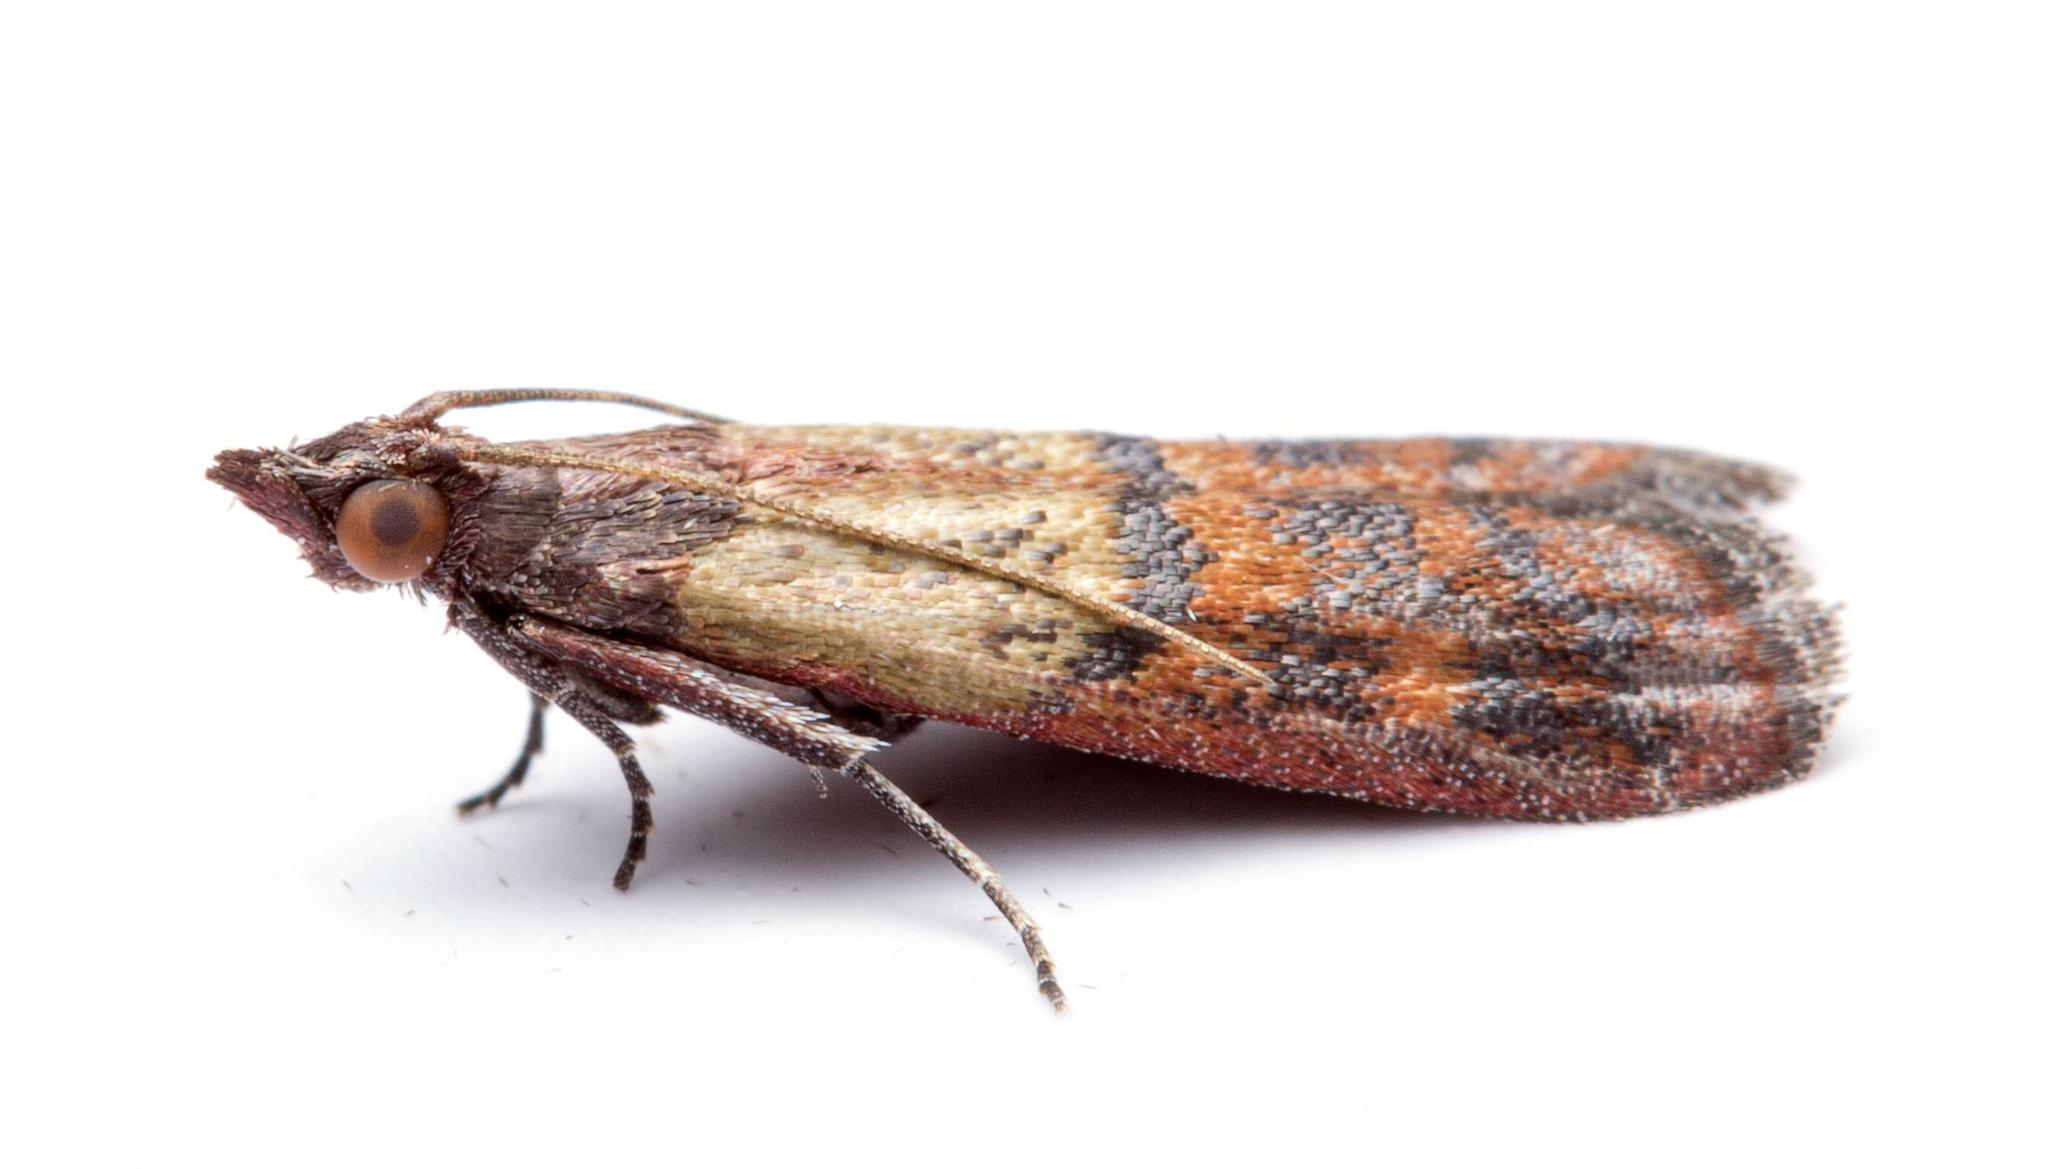 Adult Indian meal moth (Lepidoptera: Plodia interpunctella), a frequent bug found in homes.